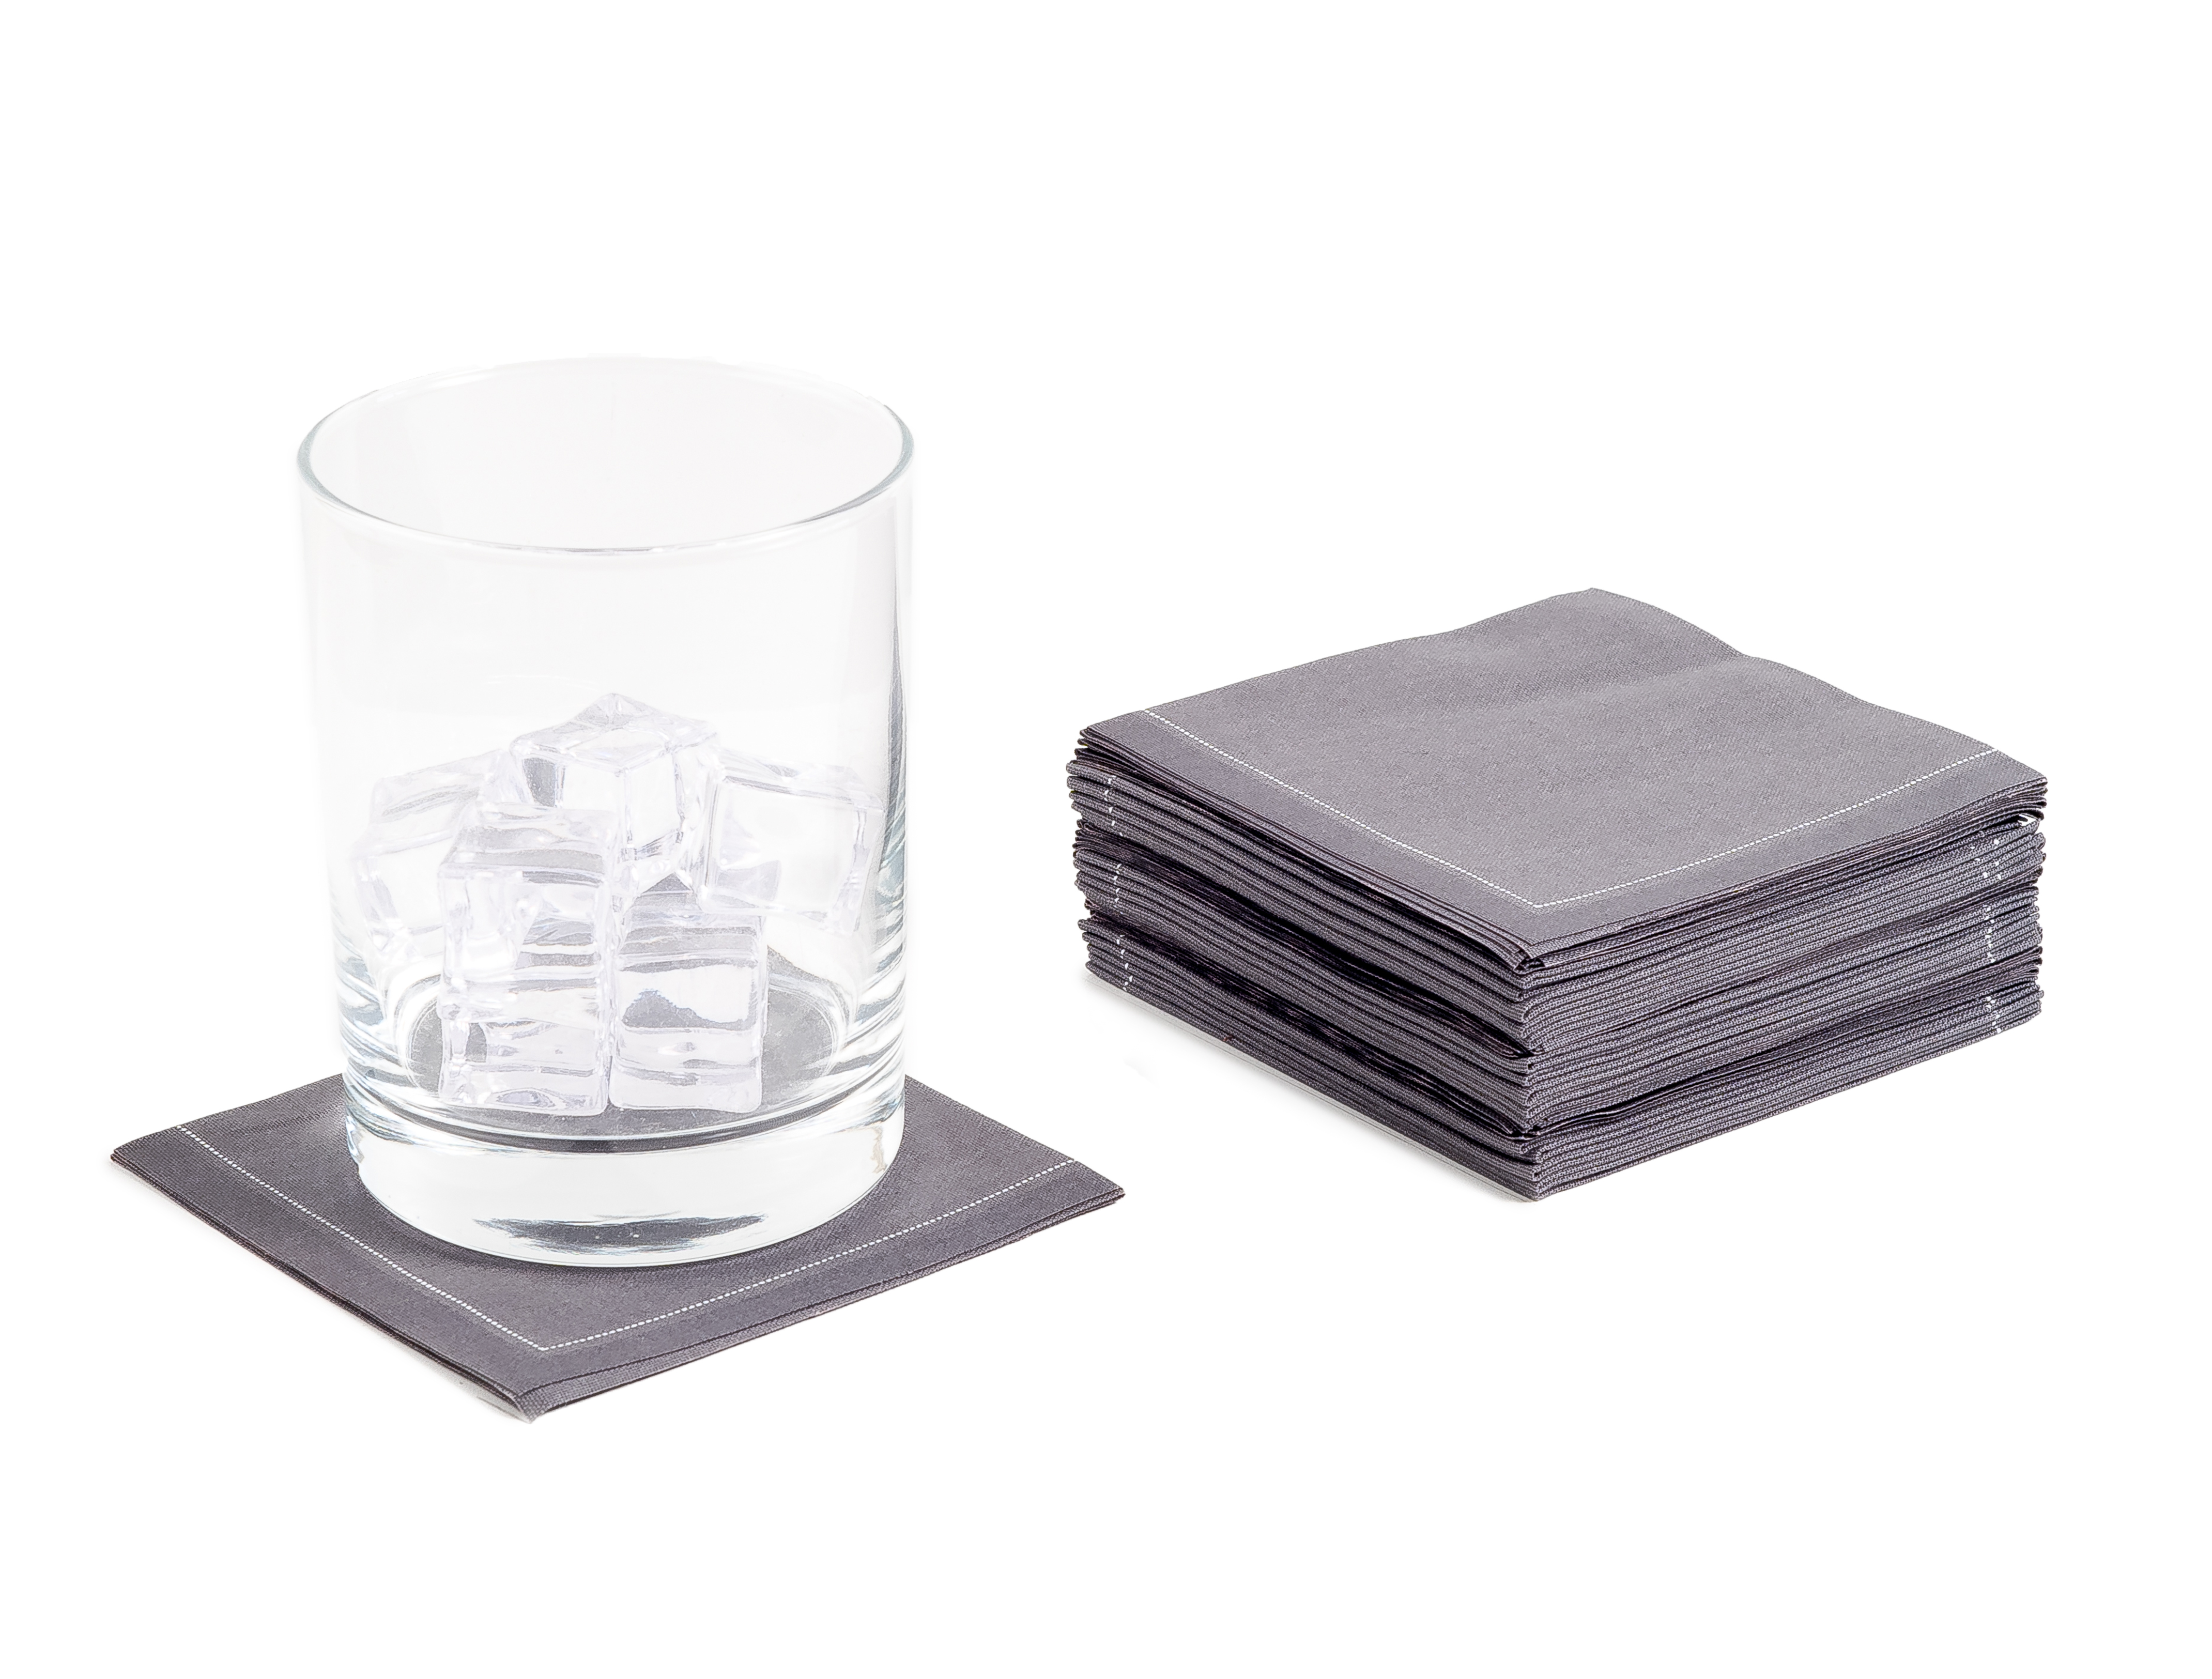 "Anthracite Grey Cotton 1/4 Fold Cocktail (140 GSM) - 8"" x 8"" (folded 4"" x 4"") - 600 units"